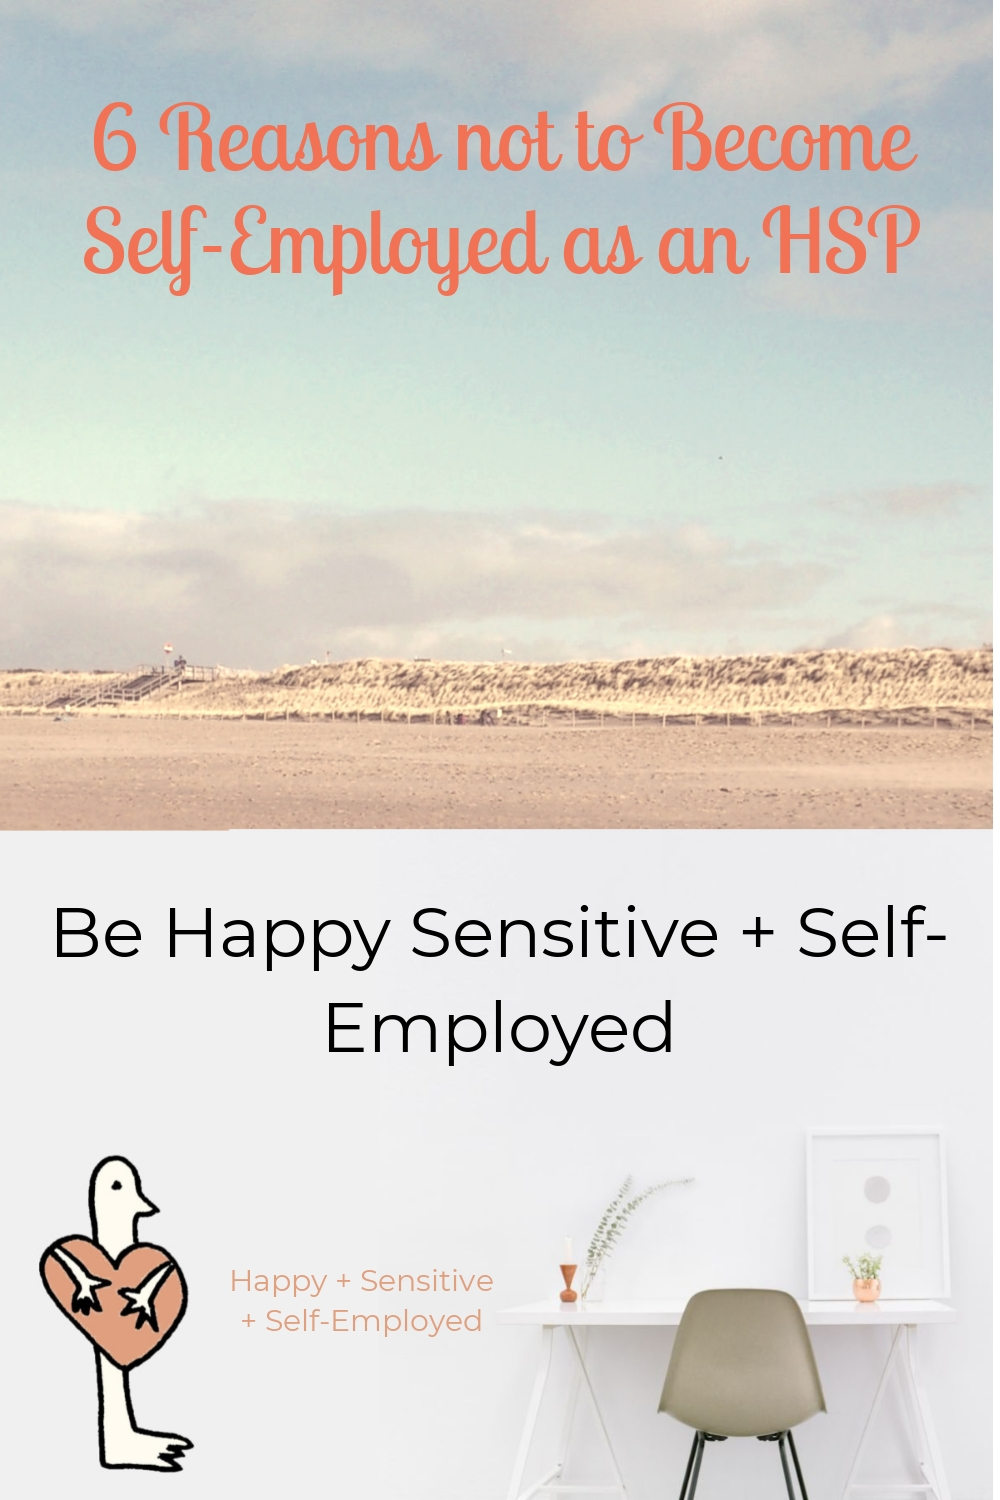 6 Reasons not to Become Self-Employed as an HSP